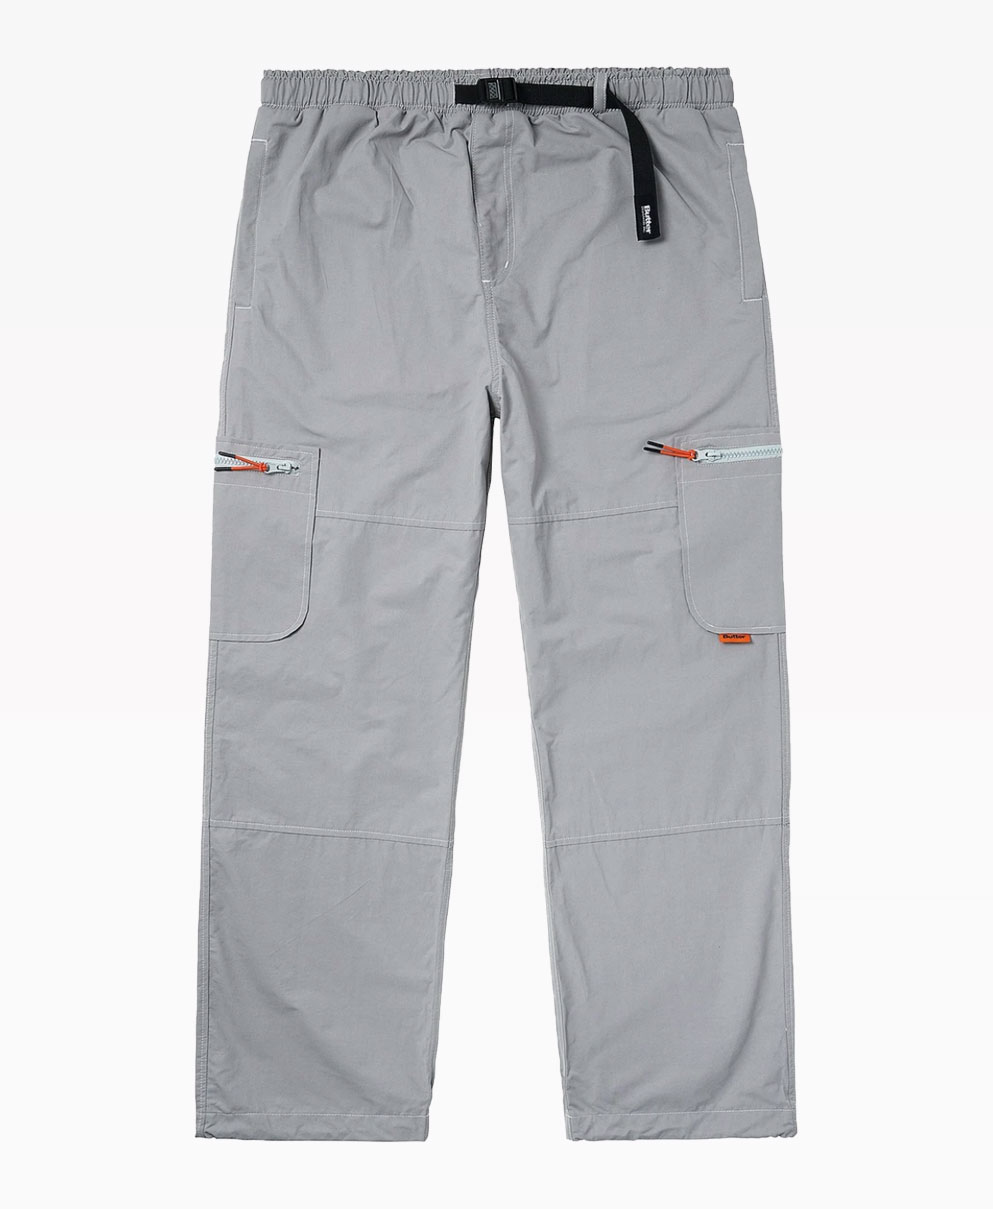 Butter Goods Summit Cargo Pants Front